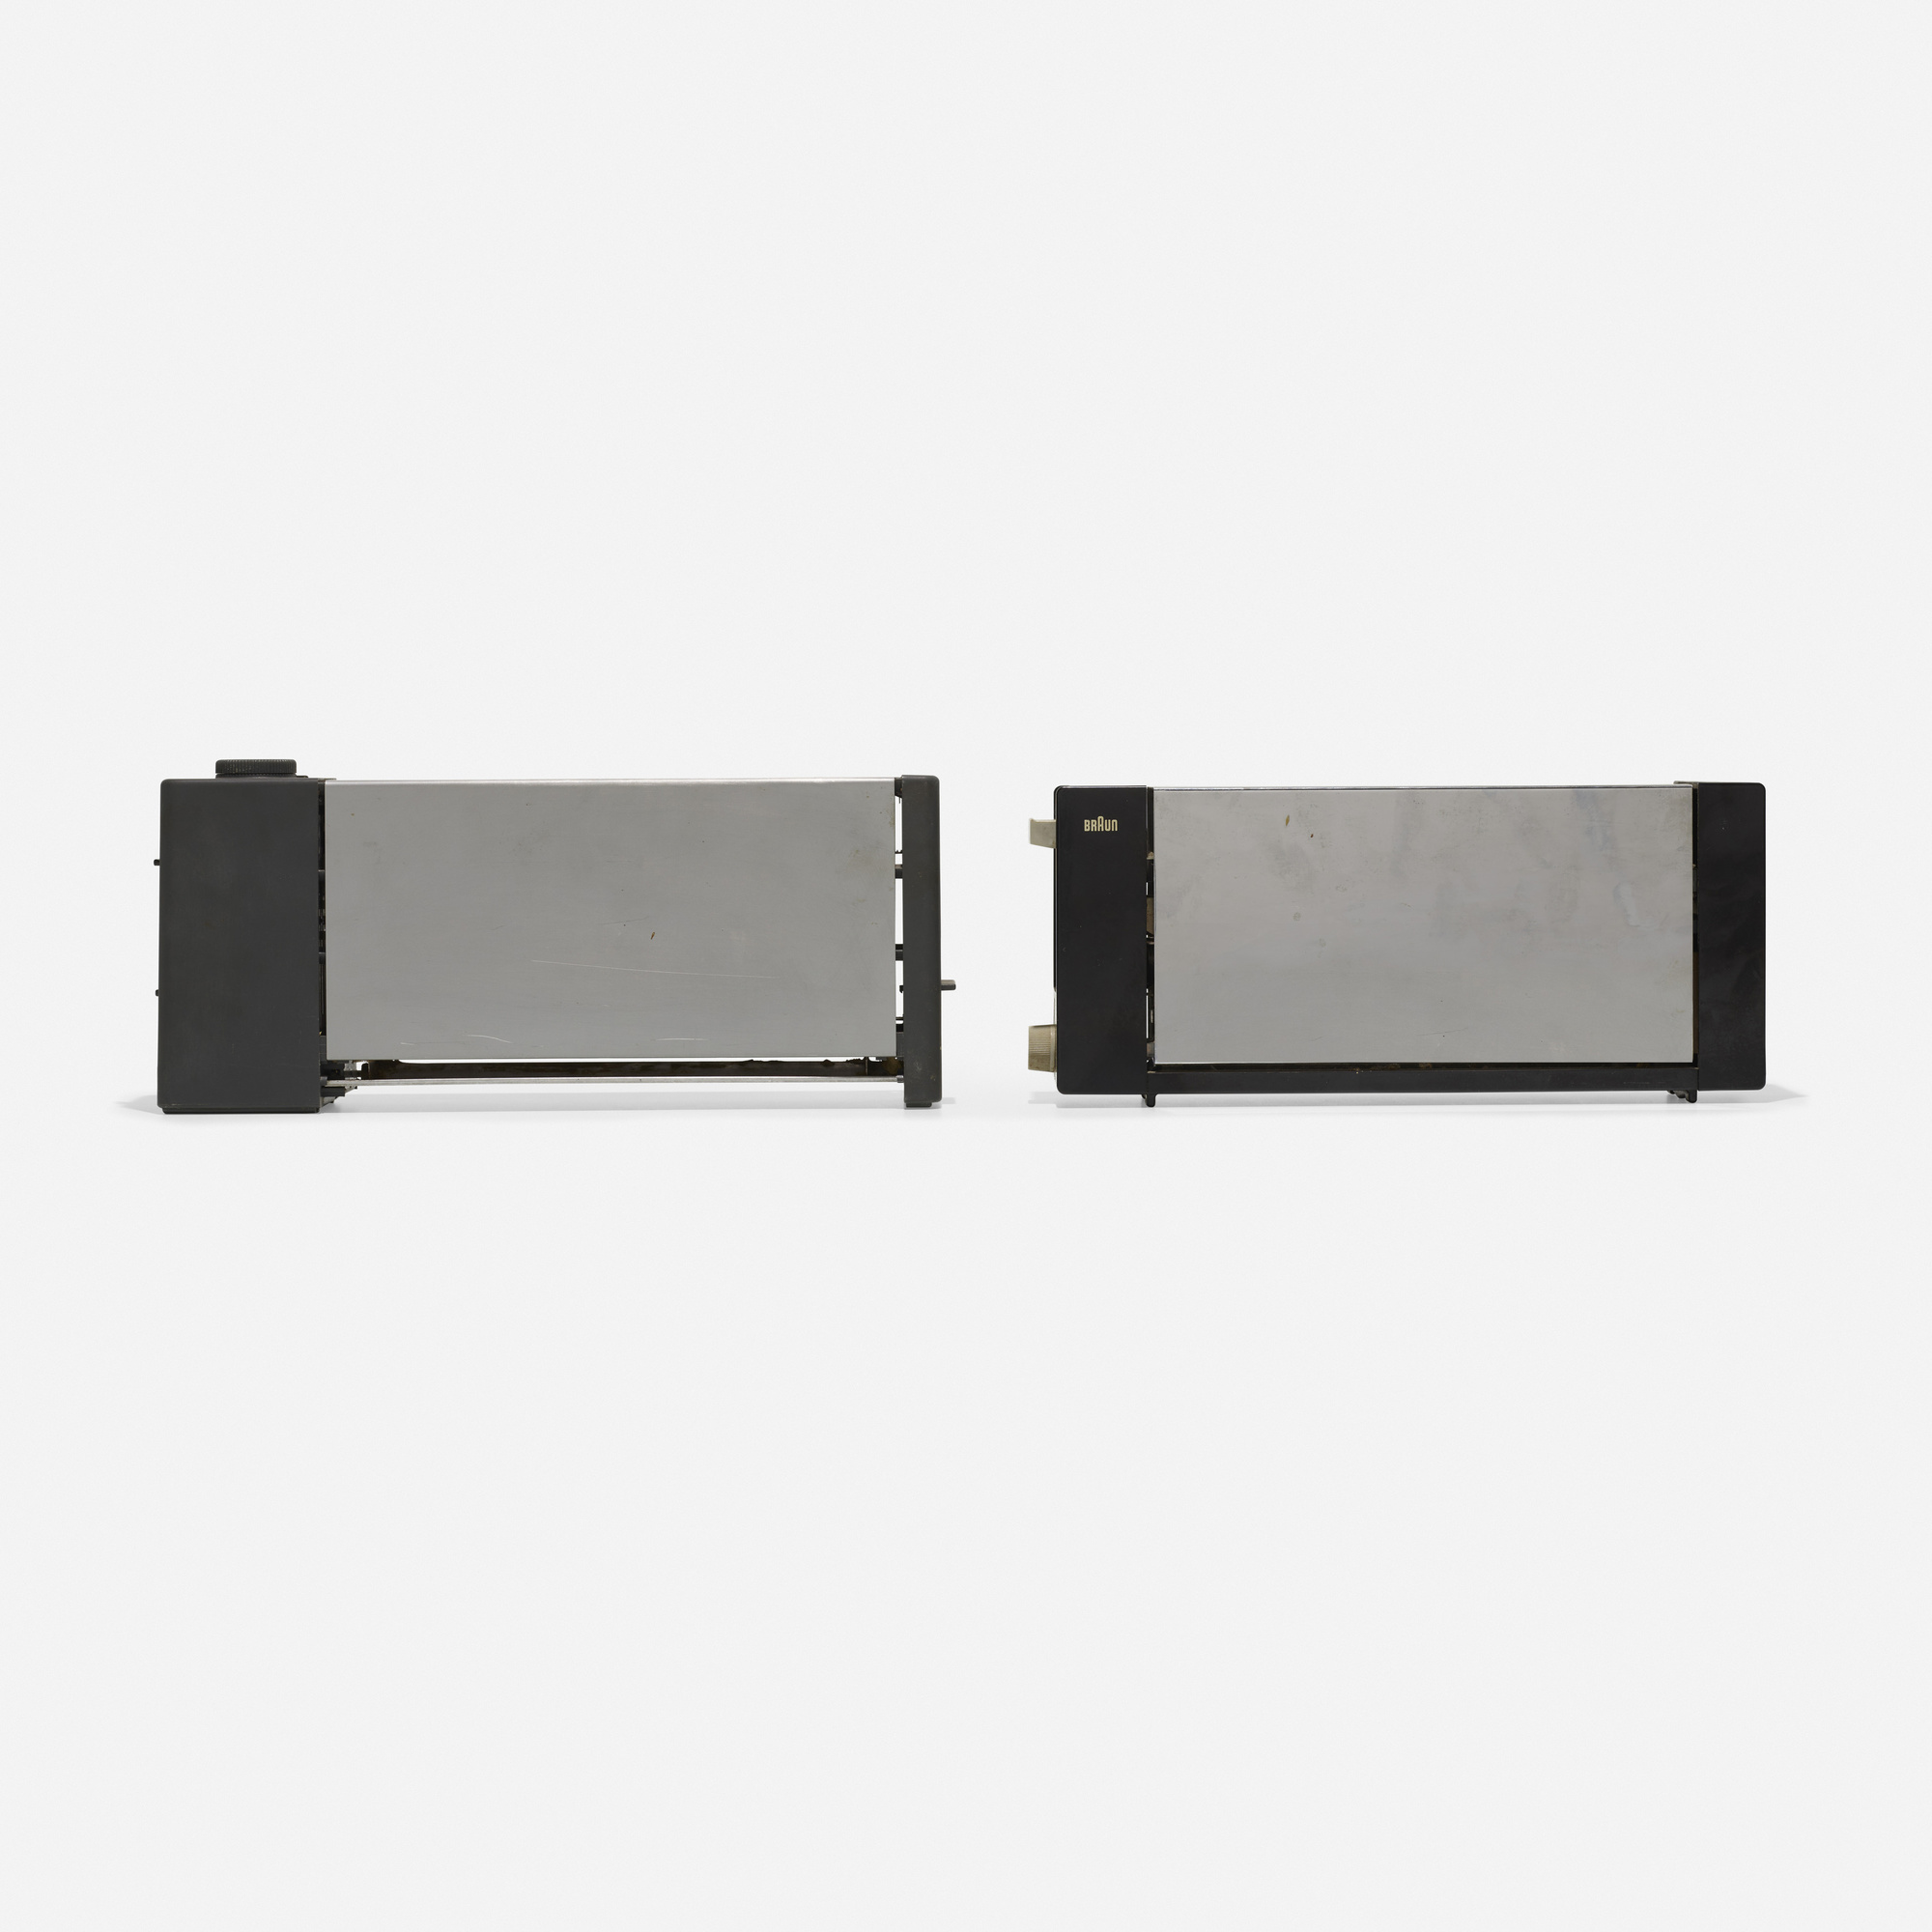 153: Reinhold Weiss / toasters, set of two (1 of 2)